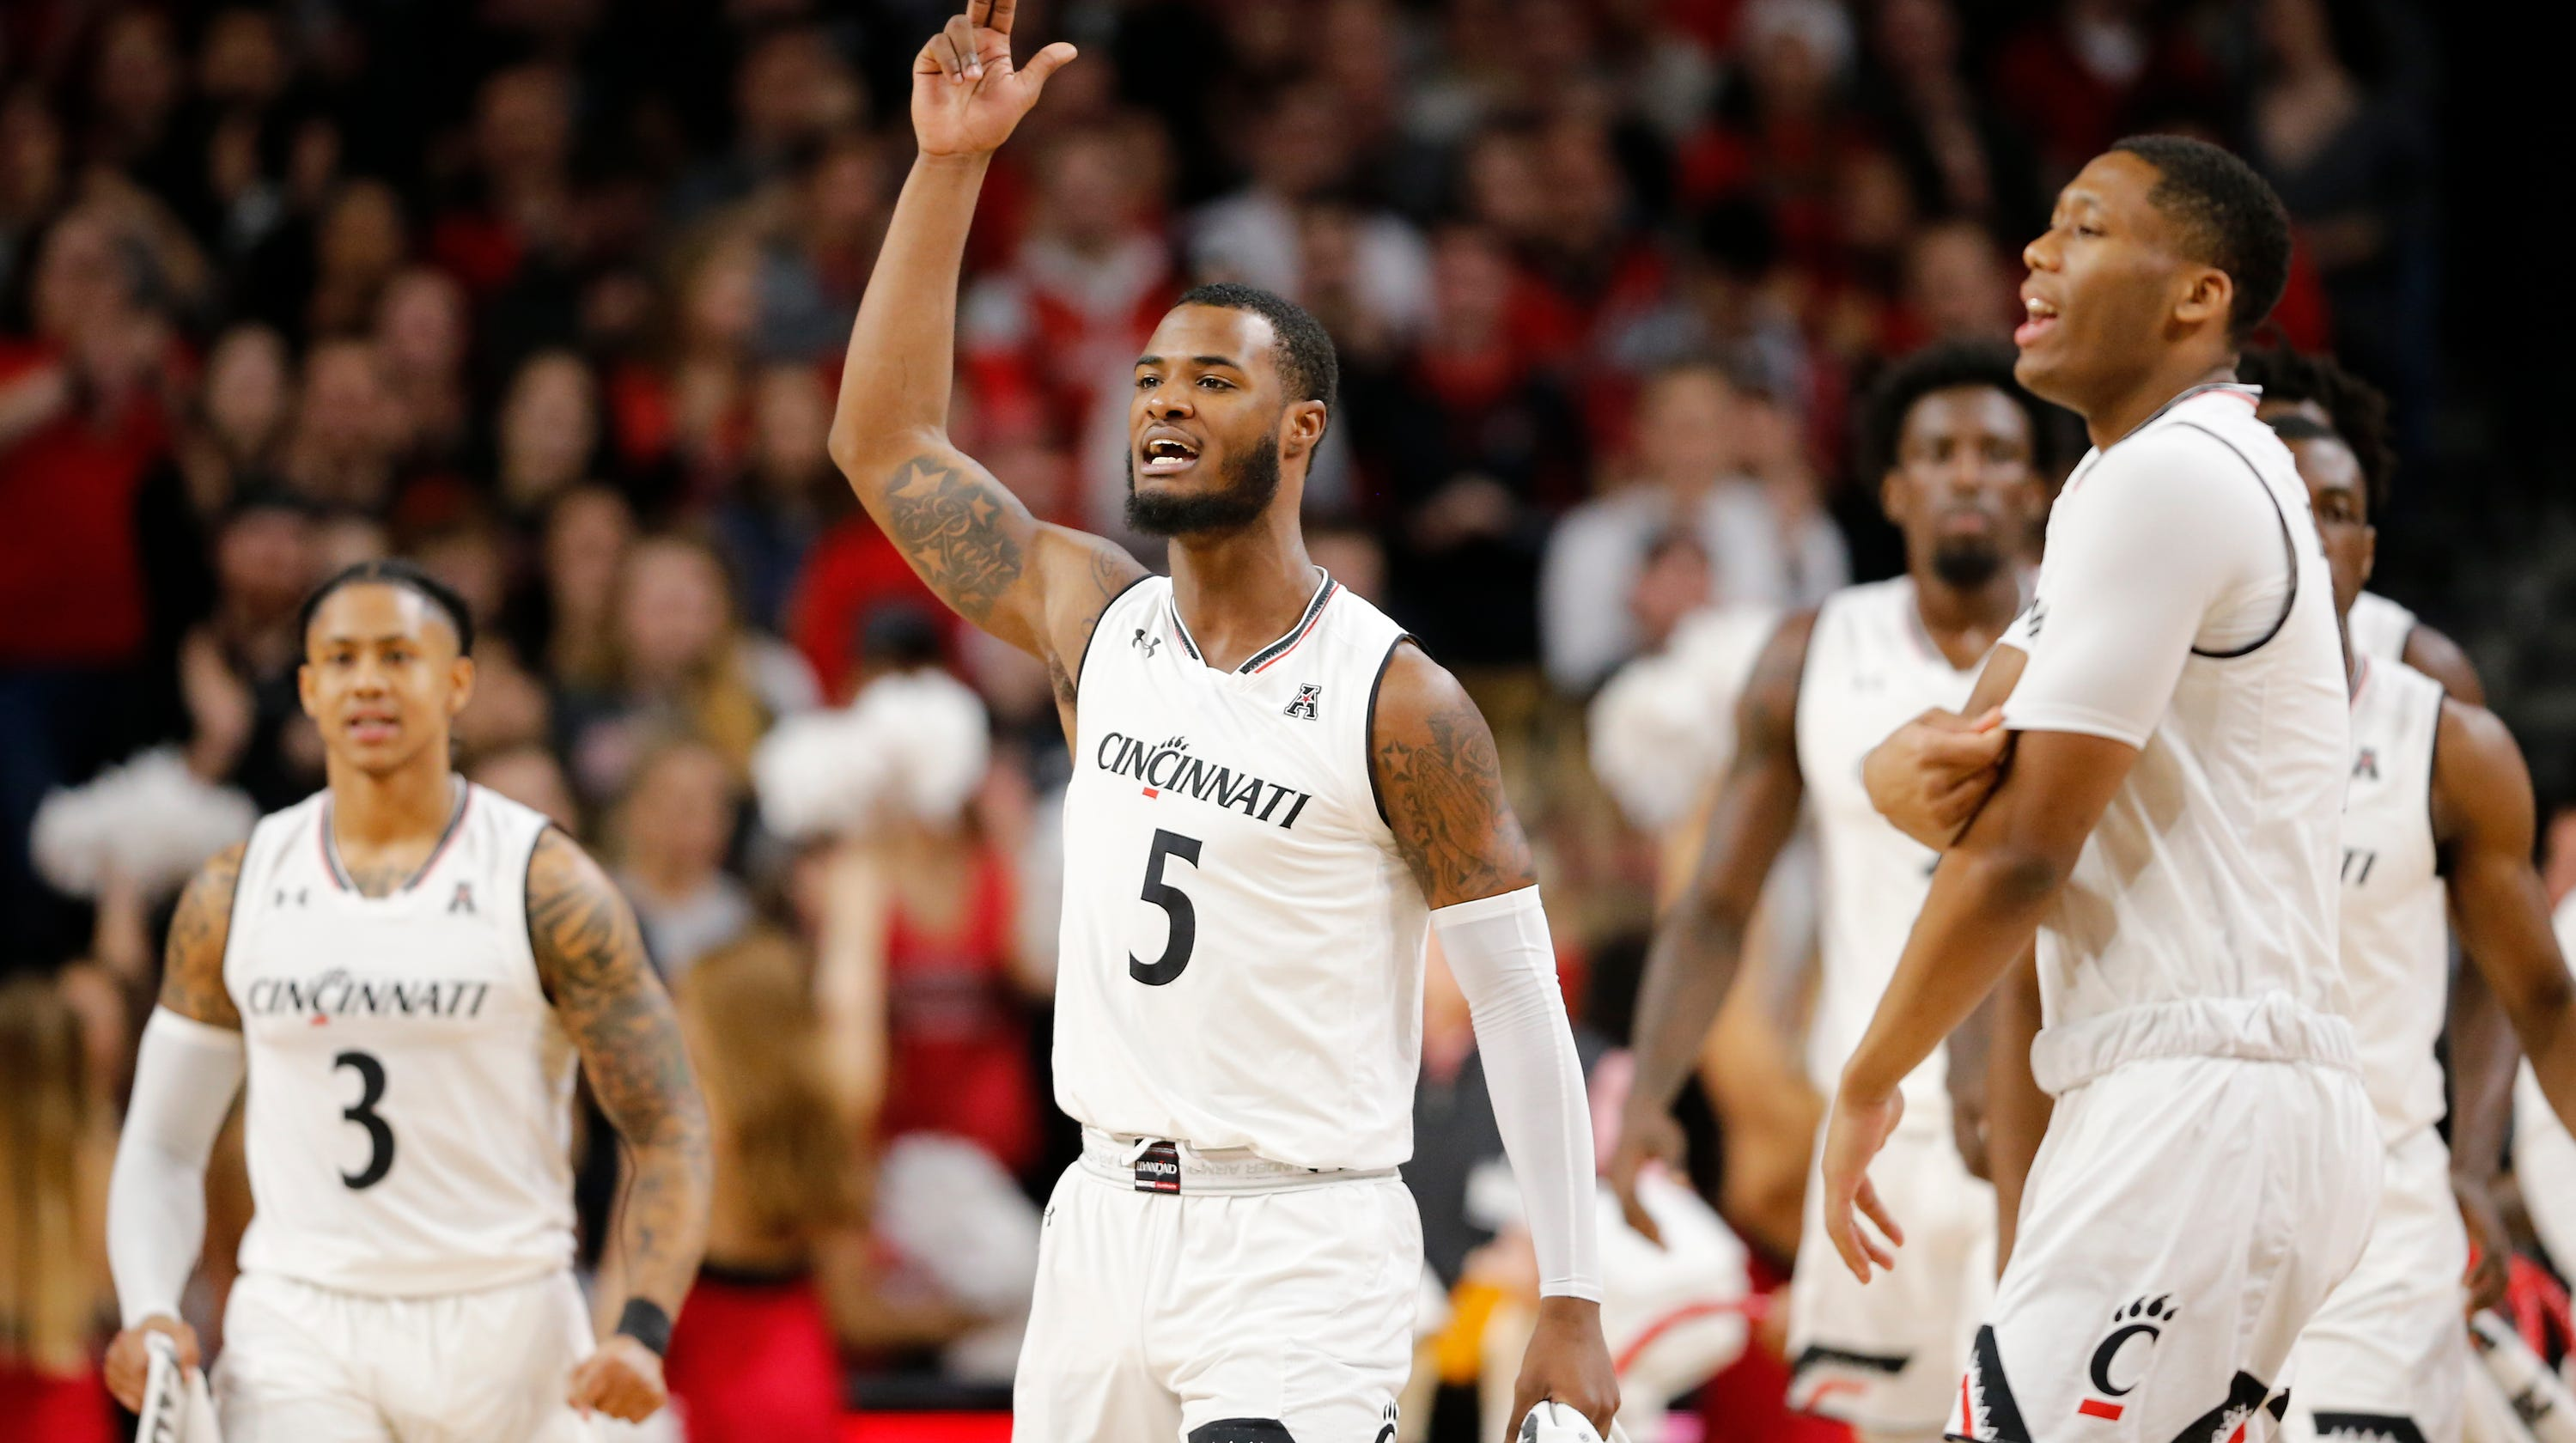 University of Cincinnati Bearcats men s basketball hits road against a  tough Temple team a19b7026d